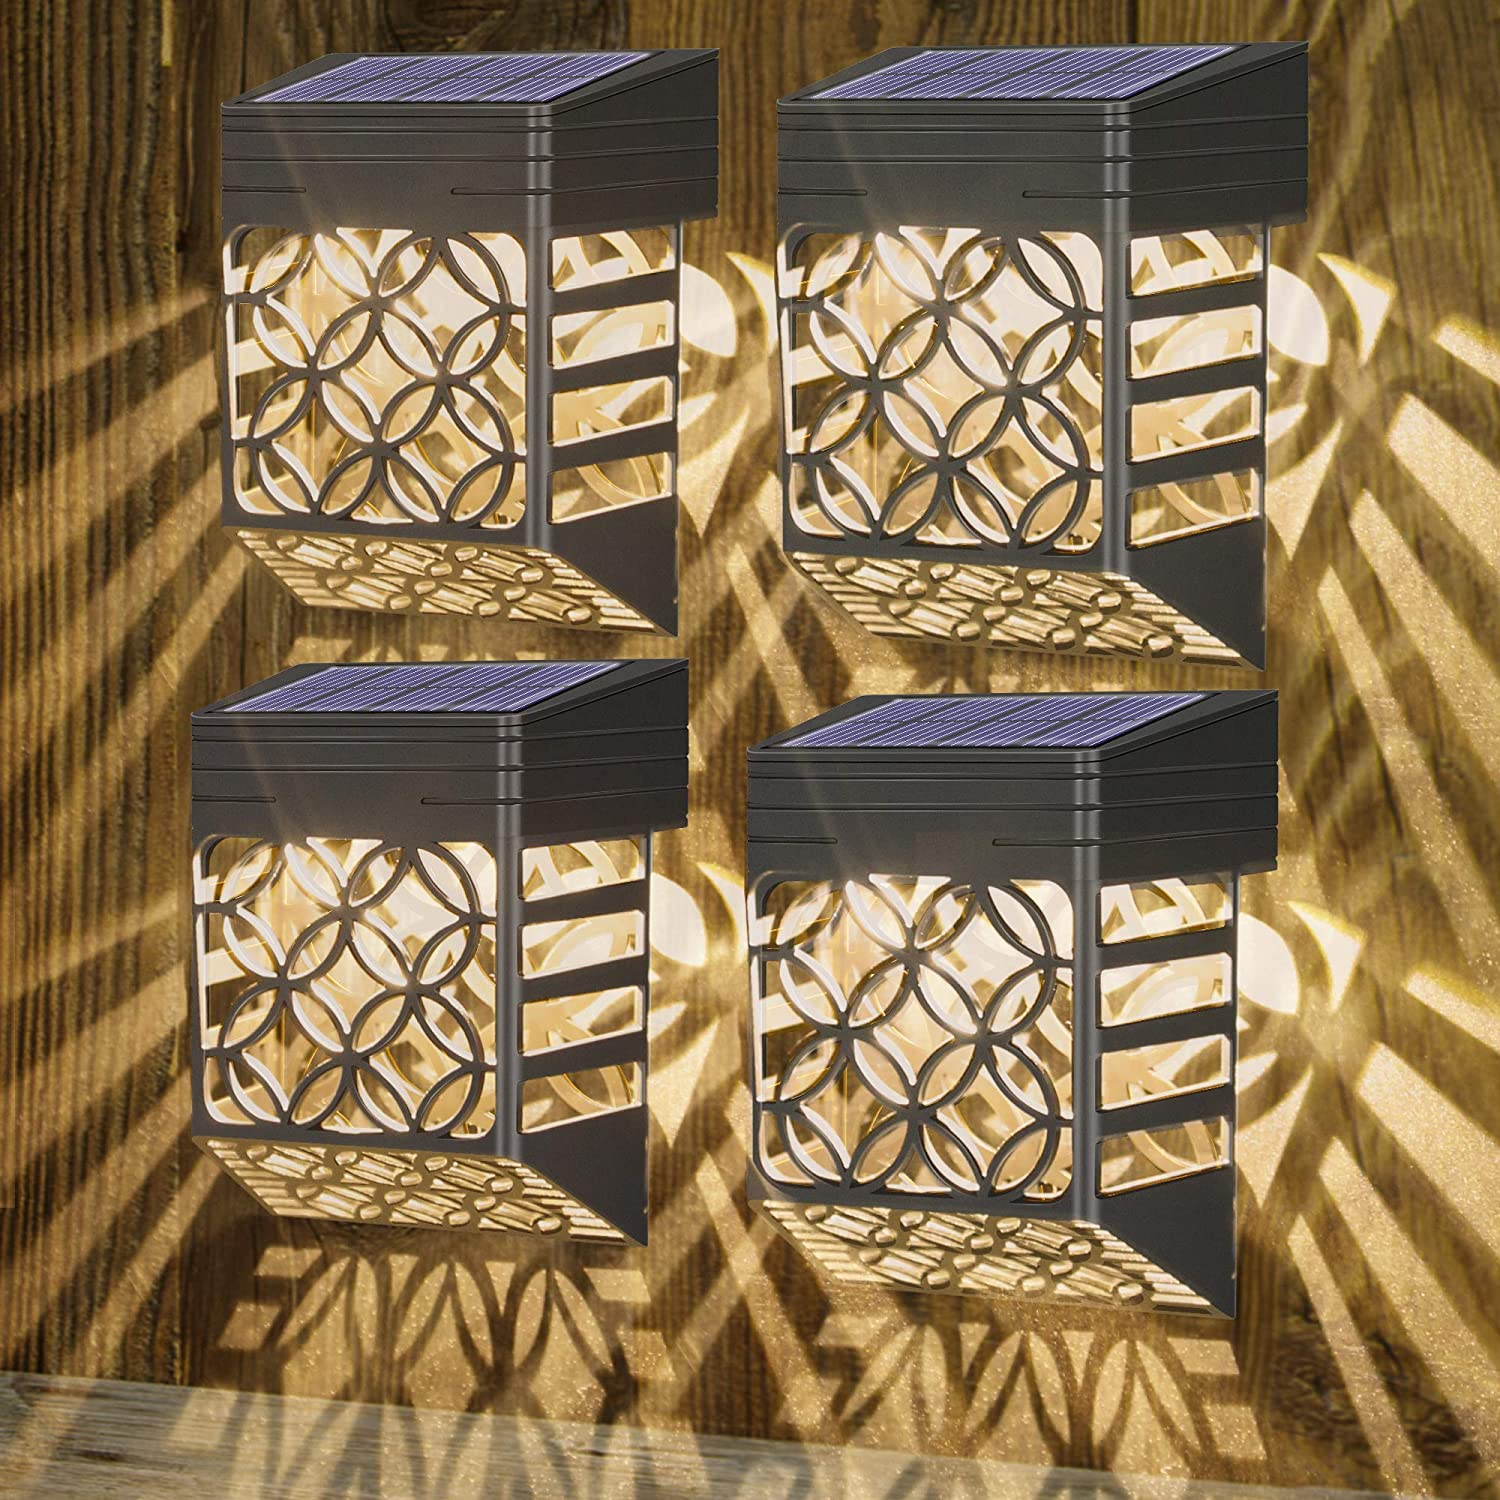 Nasharia All stores are sold Solar Deck Lights Max 73% OFF Fence Outdoor Wall Light